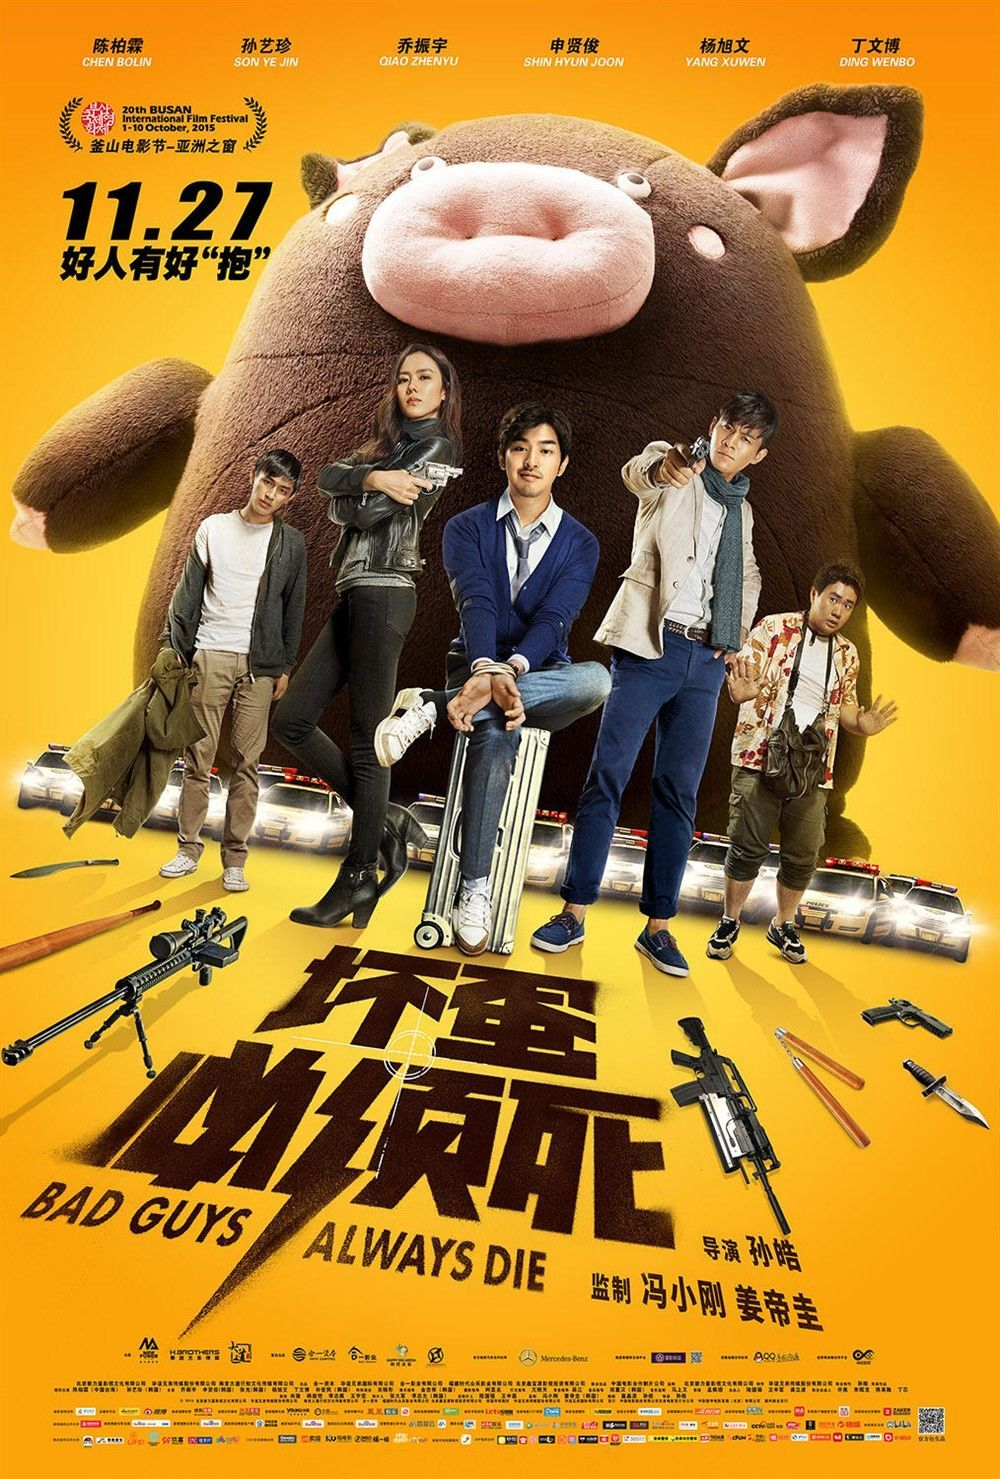 Lotsa Movie Posters And Cnblue S Chinese Theme Song For Bolin Chen And Son Ye Jin S Bad Guys Always Die Bad Guy Cute Poster Martial Arts Movies